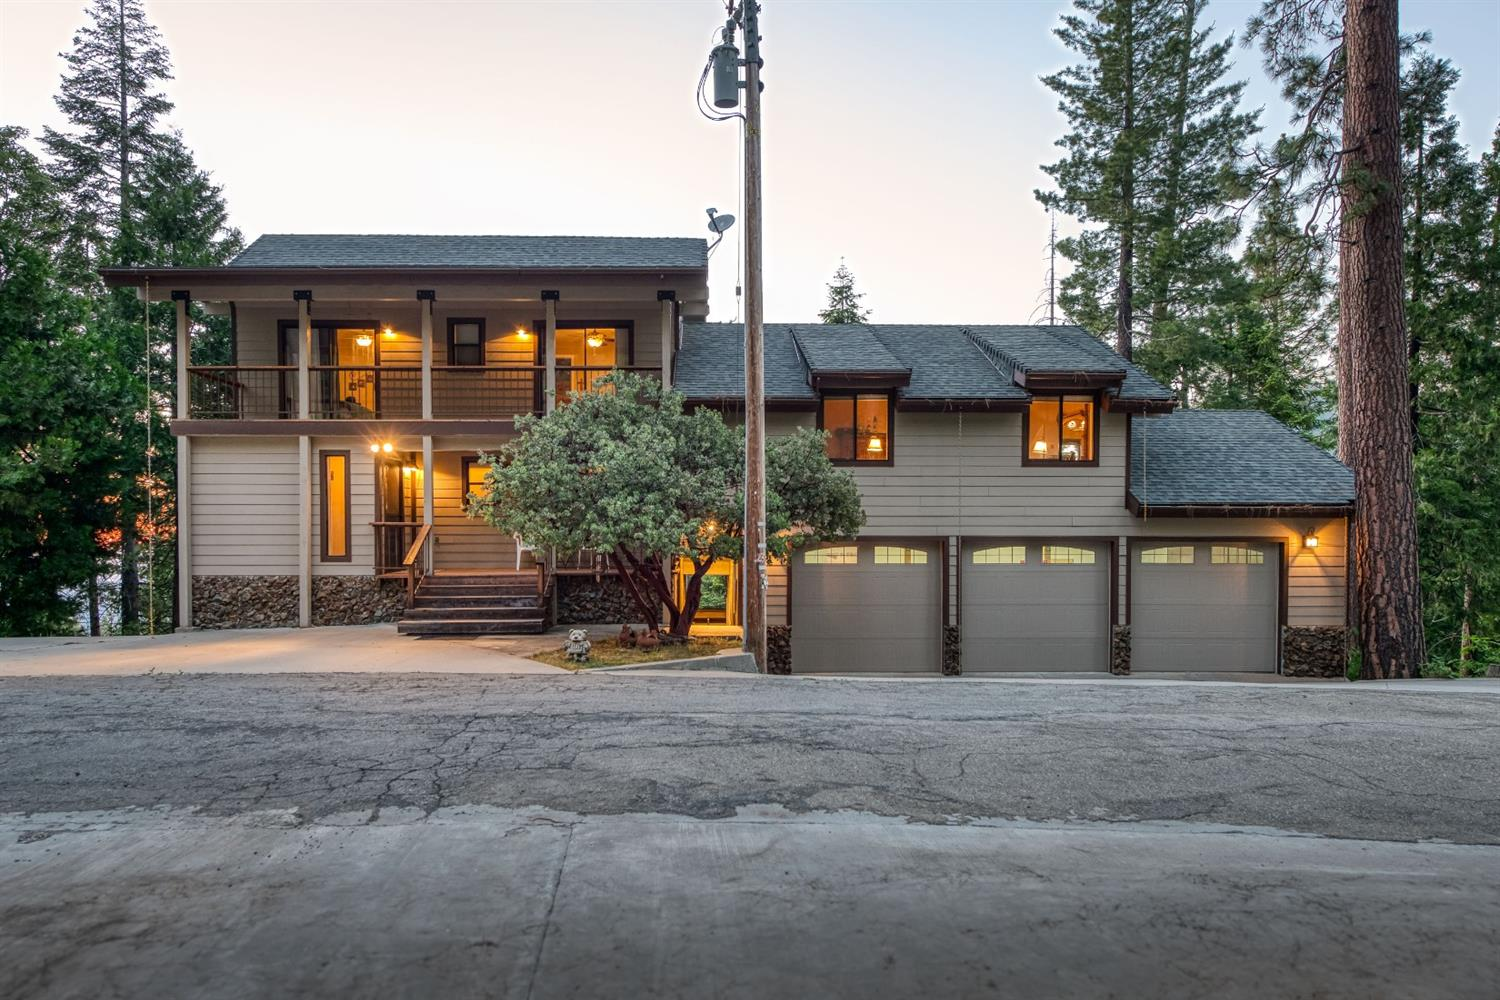 Photo of 39839 Big Shuteye Lane, Shaver Lake, CA 93664